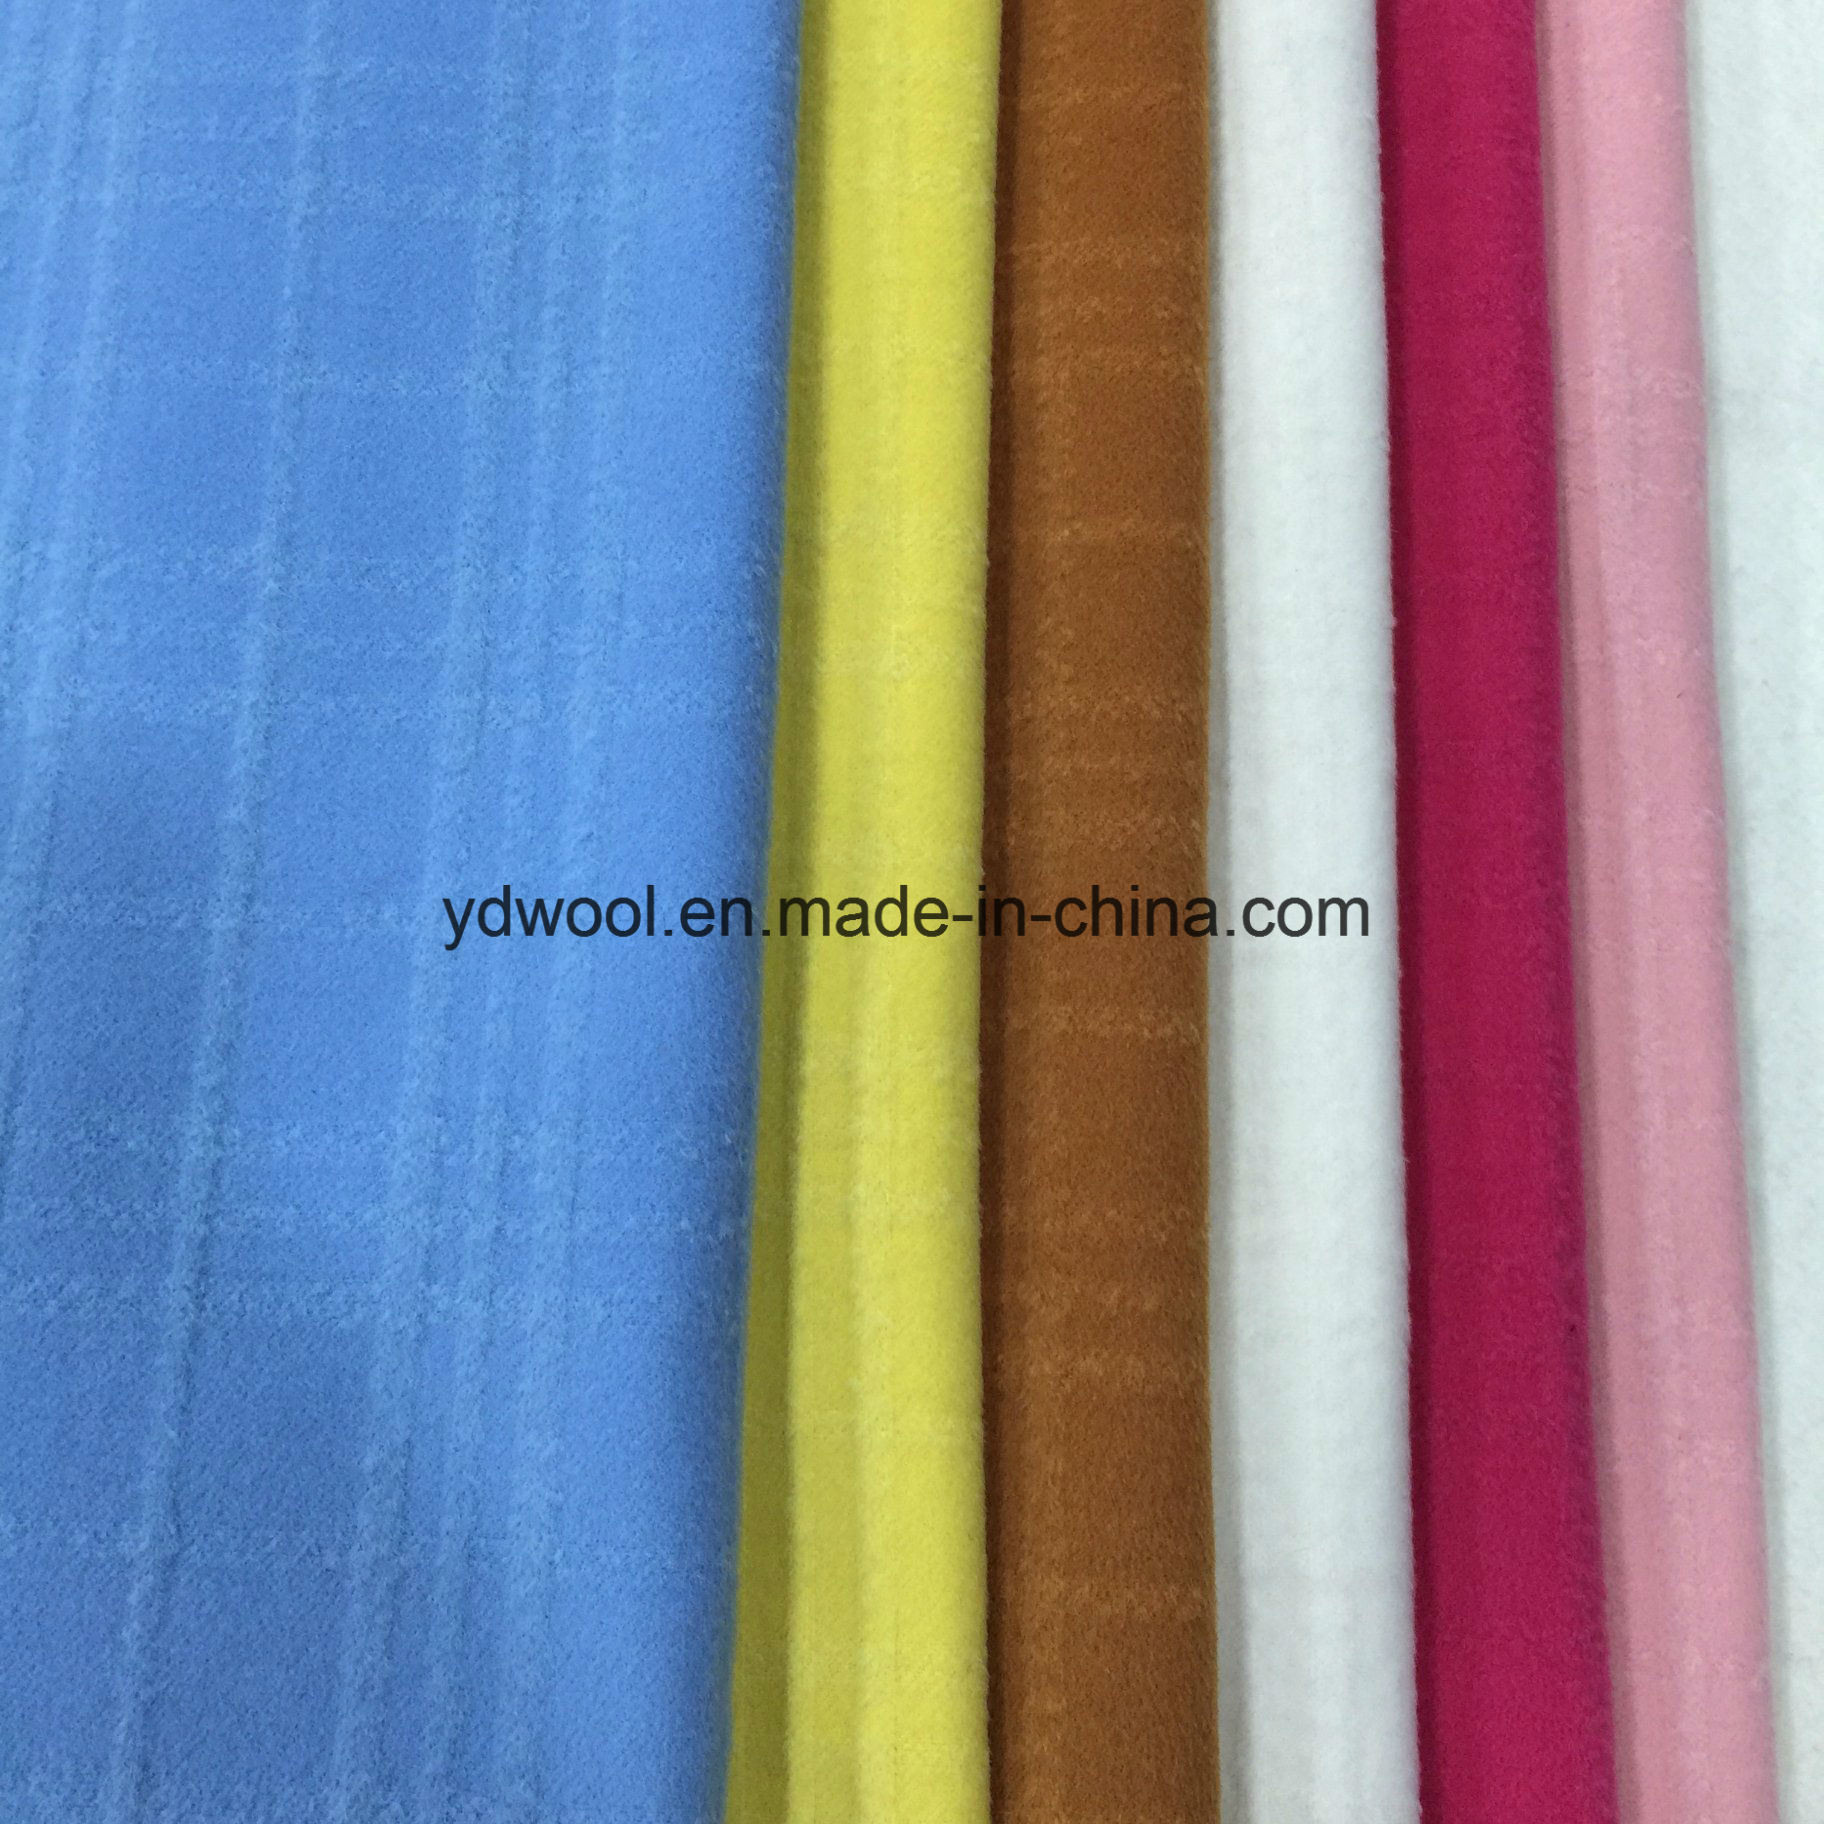 Jacquard Check Wool Fabric Ready Greige Fabric